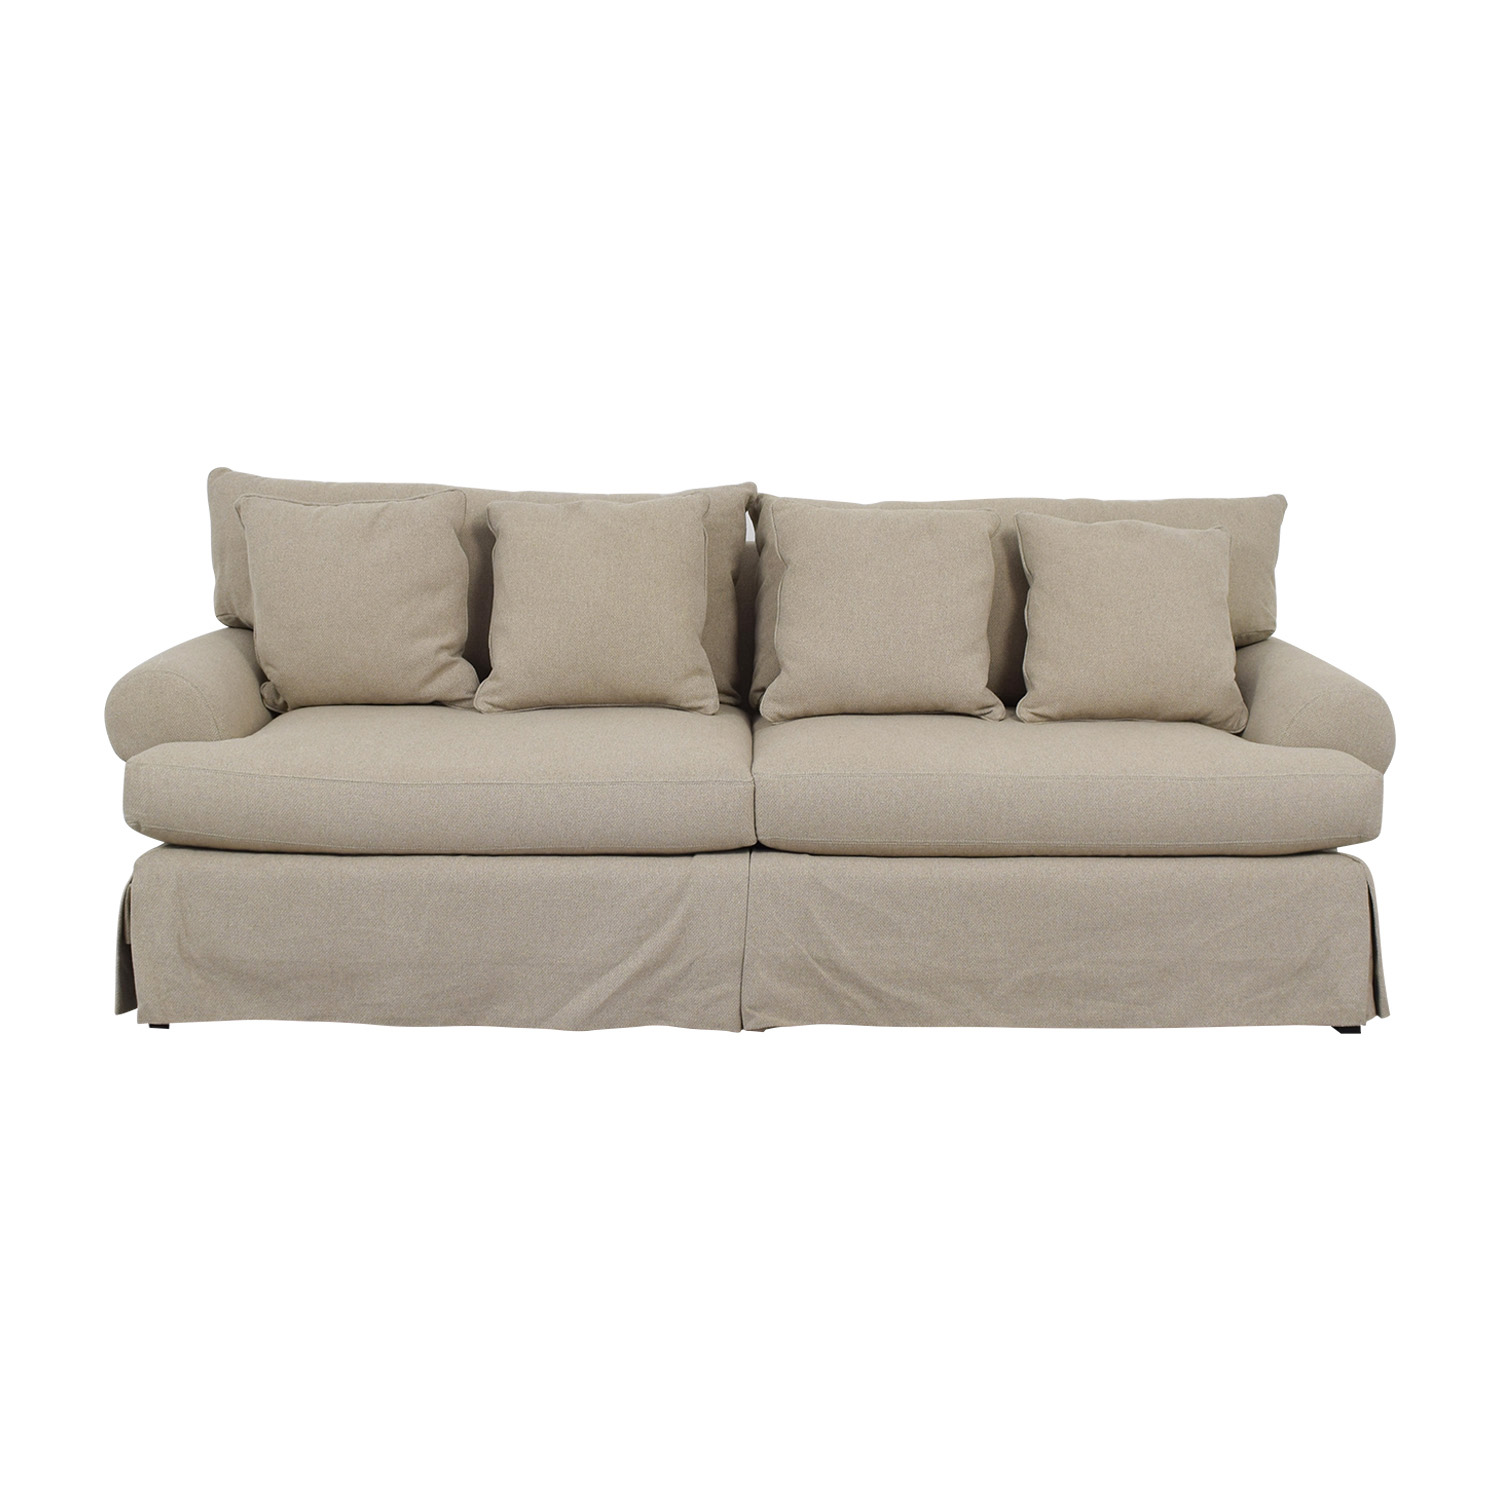 Neiman Marcus Neiman Marcus Keystone Grey Two-Cushion Sofa dimensions